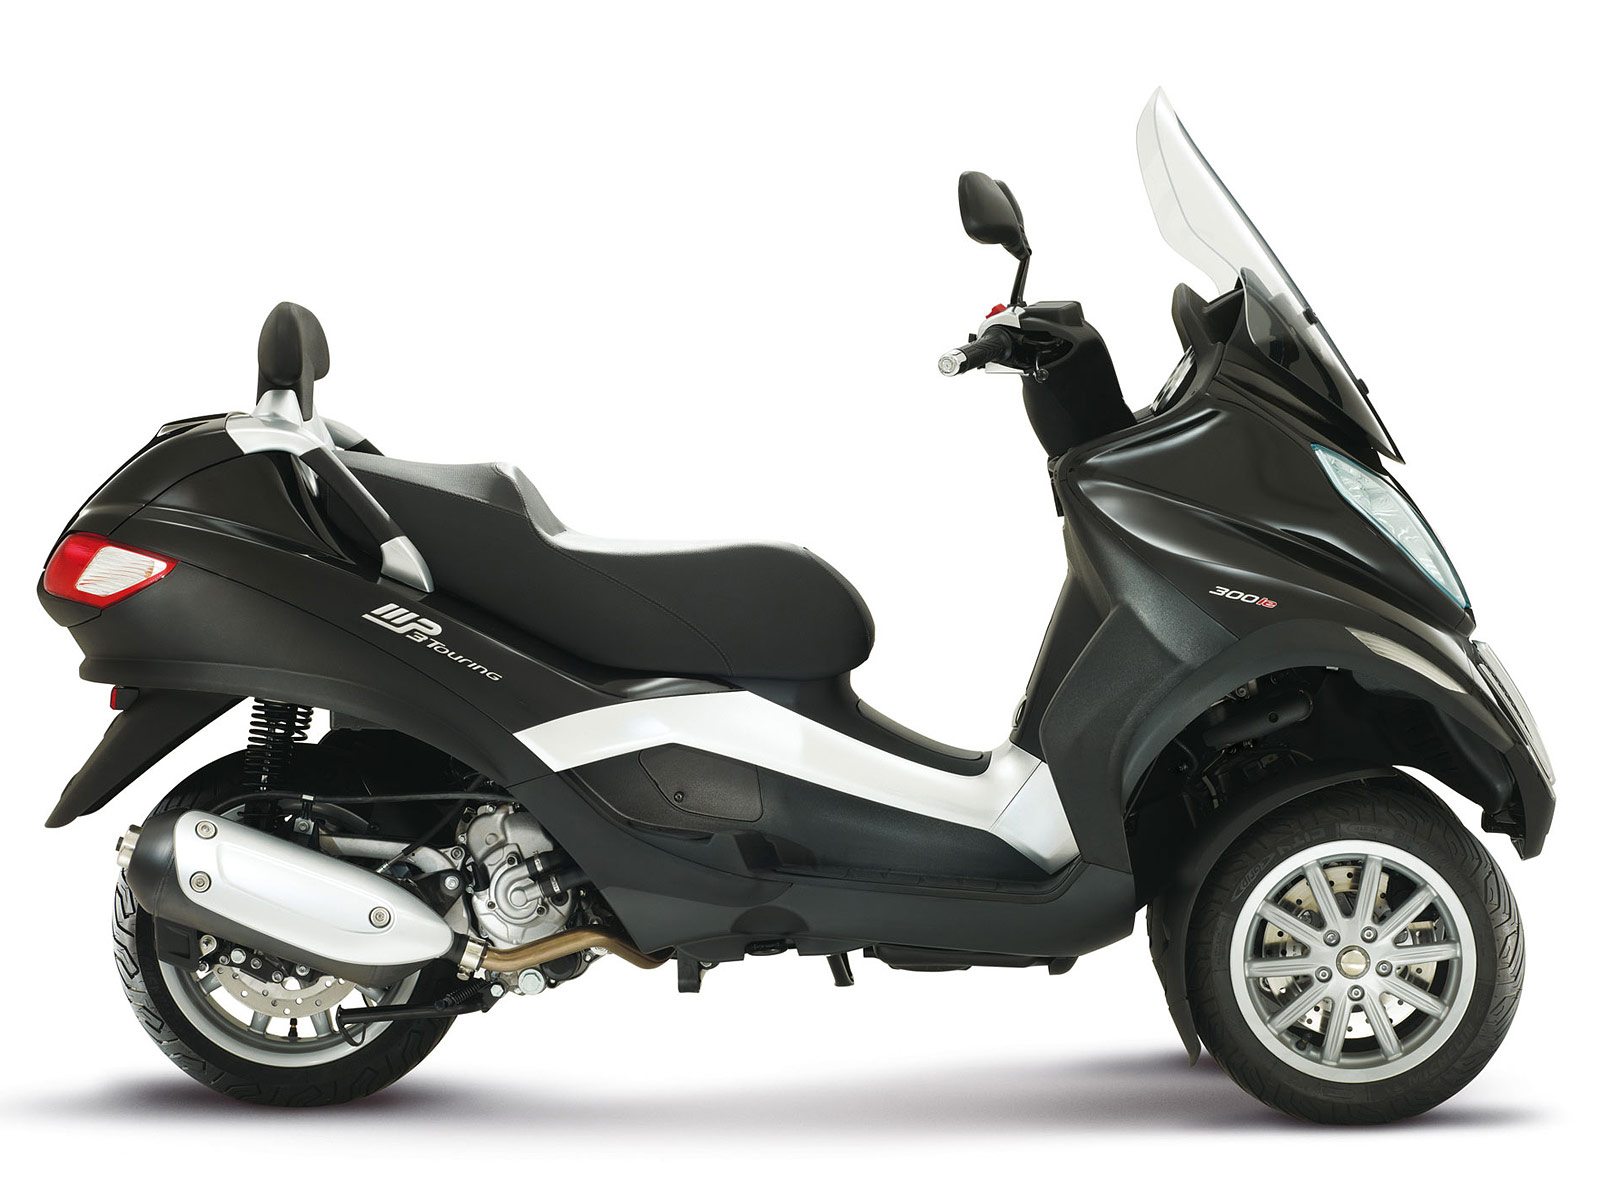 2012 piaggio mp3 touring 125 ie scooter picture specifications. Black Bedroom Furniture Sets. Home Design Ideas